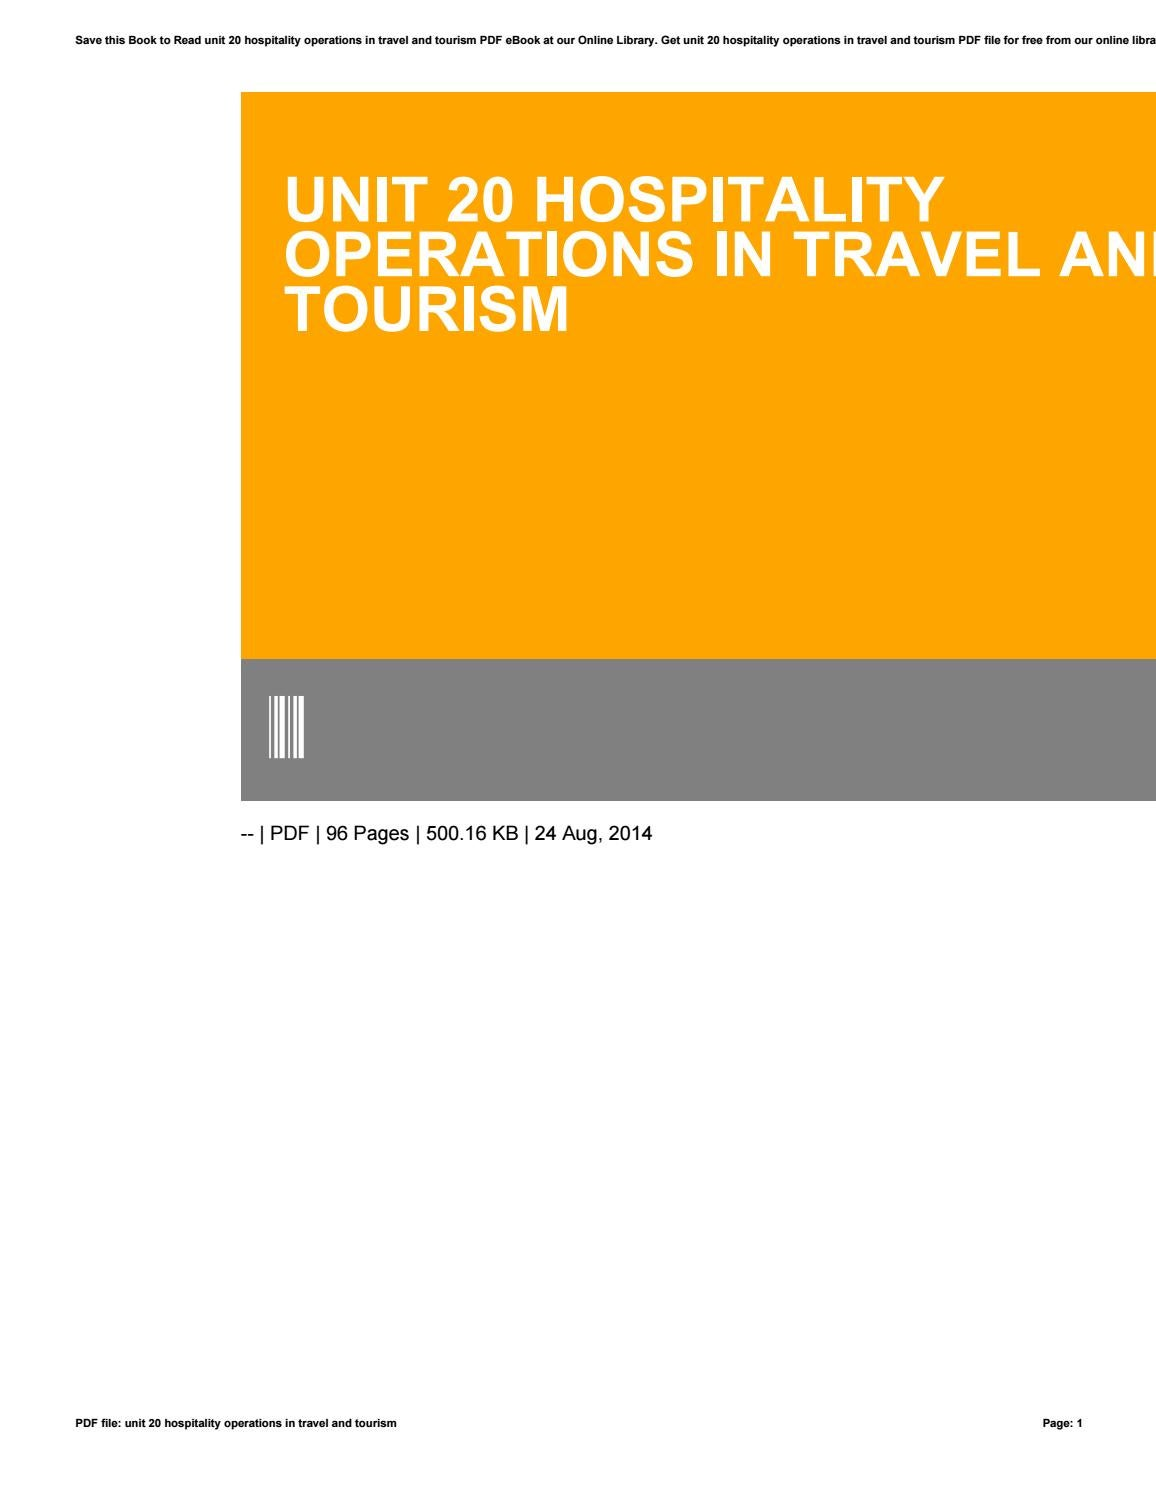 Unit 20 hospitality operations in travel and tourism by